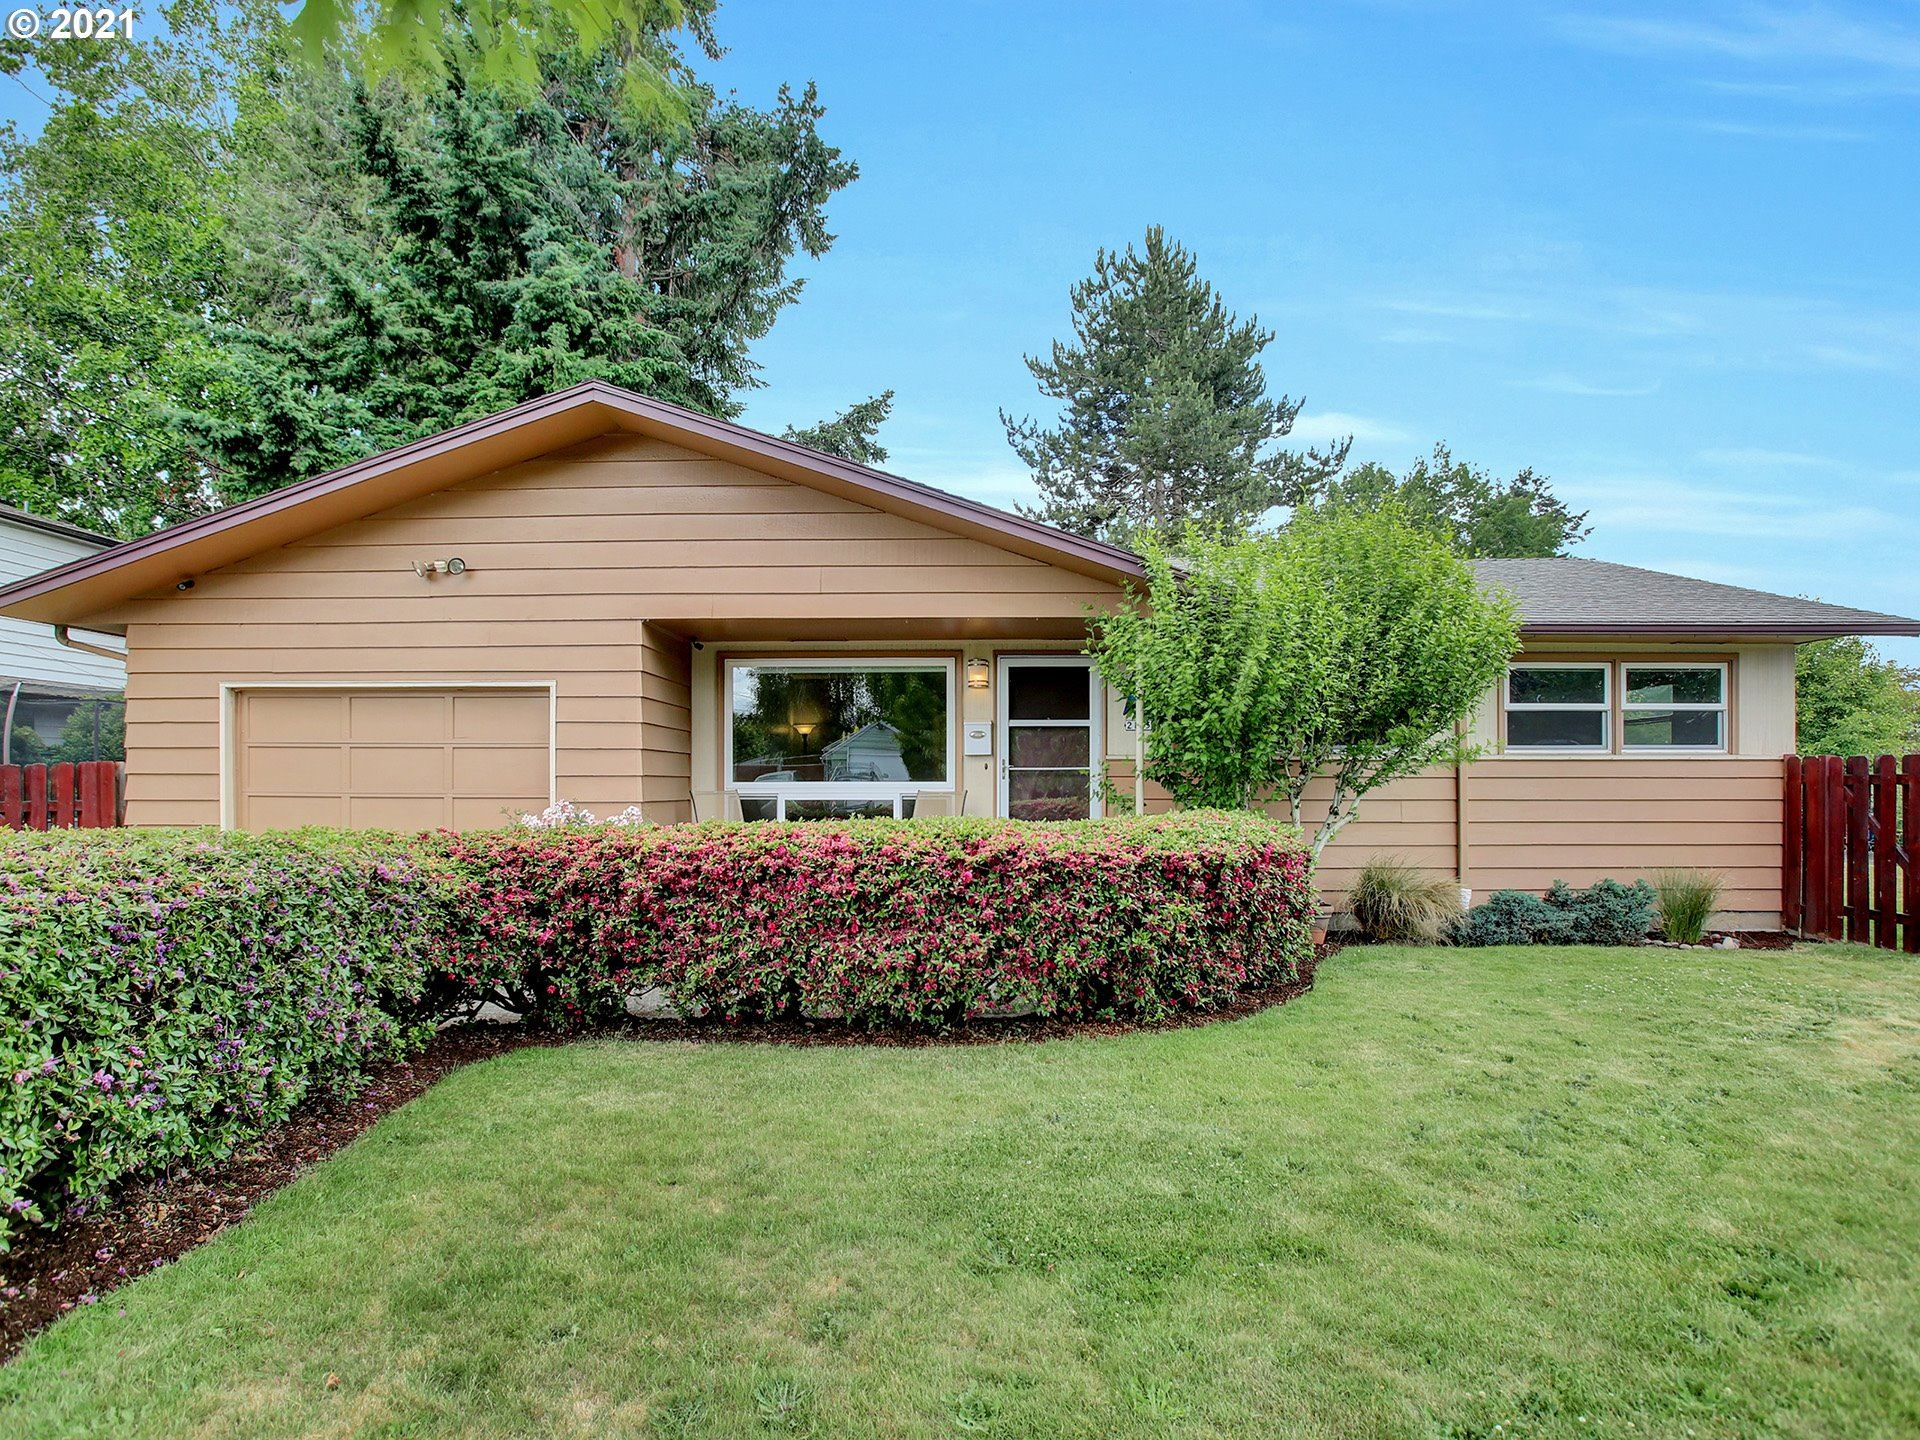 2155 SE 98TH AVE, Portland, OR 97216 - MLS#: 21664595